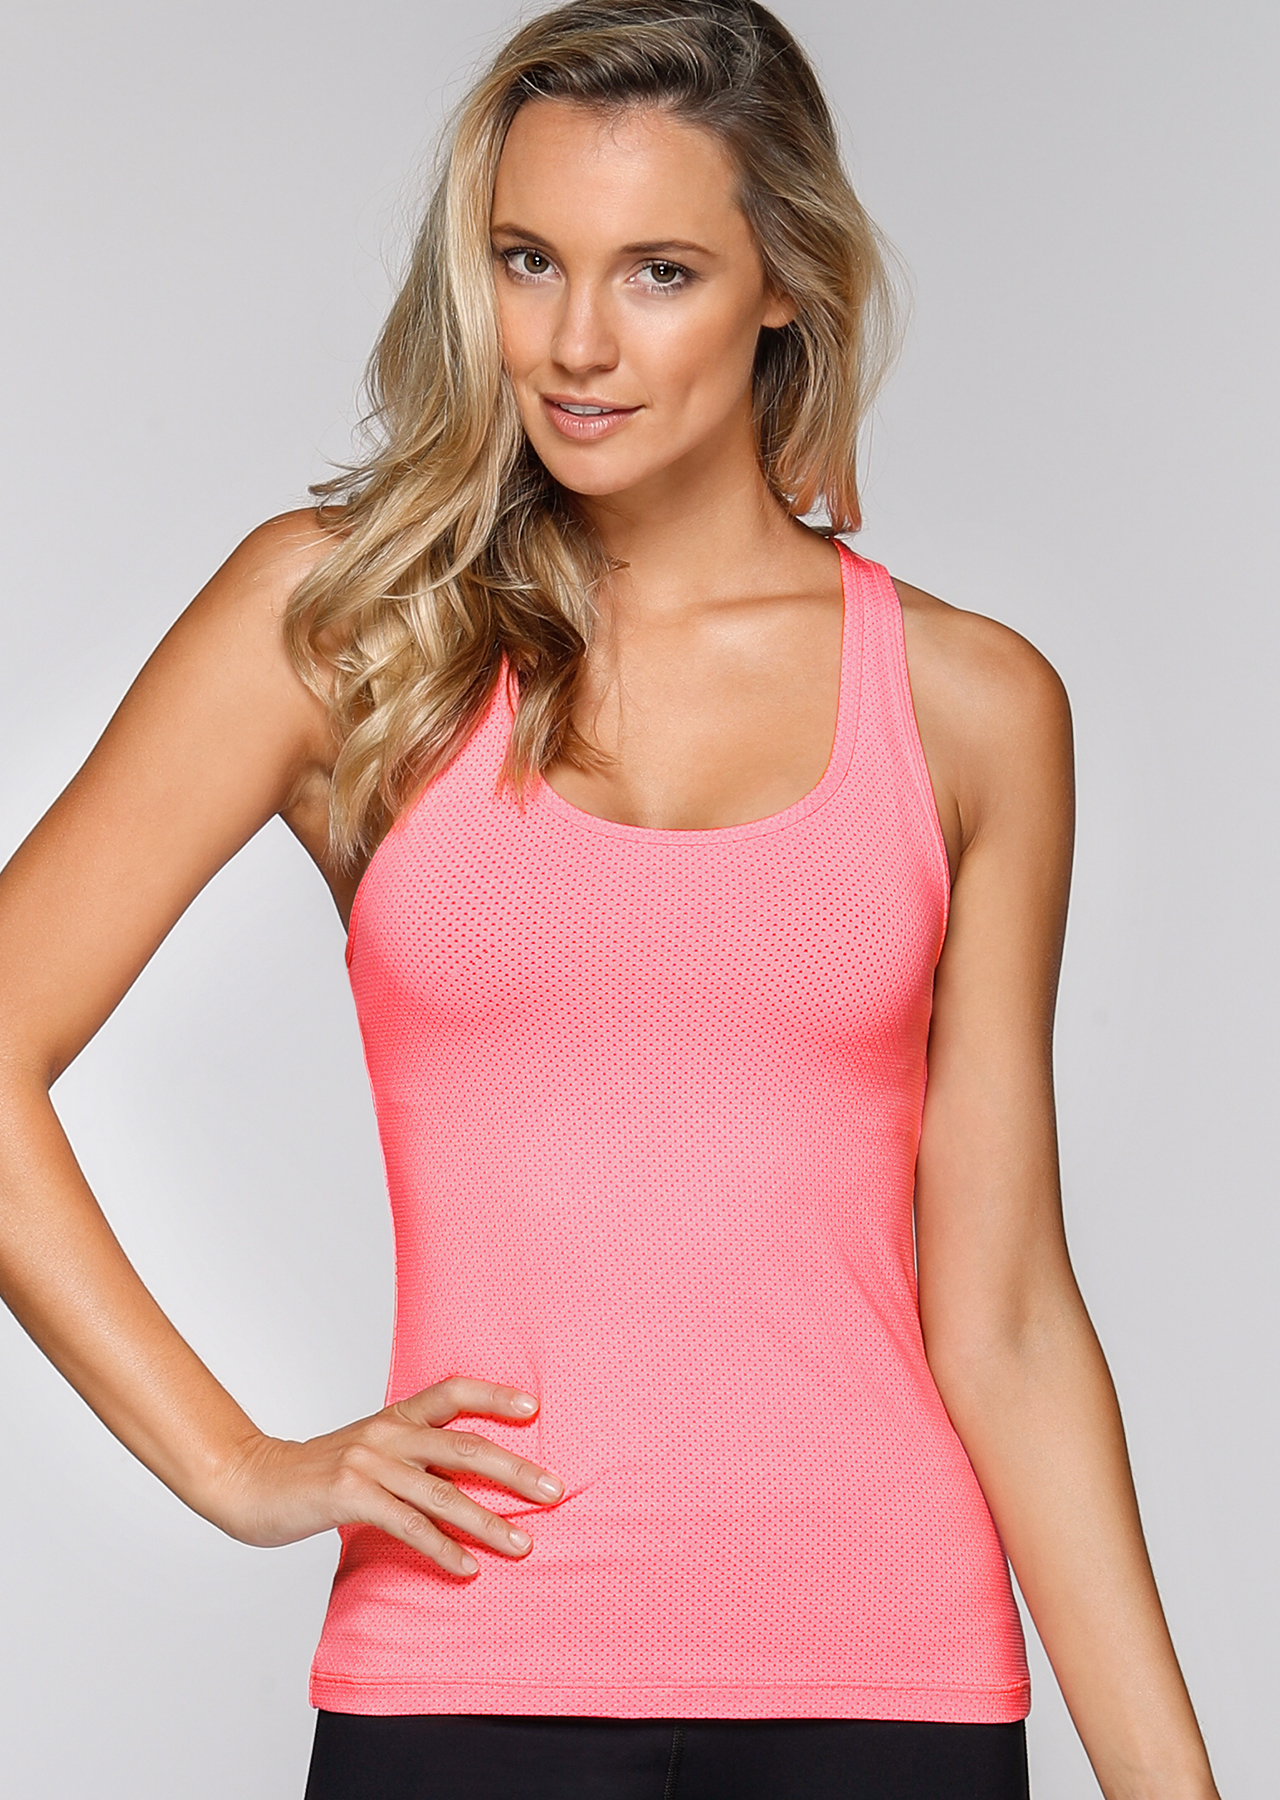 angie excel tank pink 071767 vpm 1 - Sports & Fitness